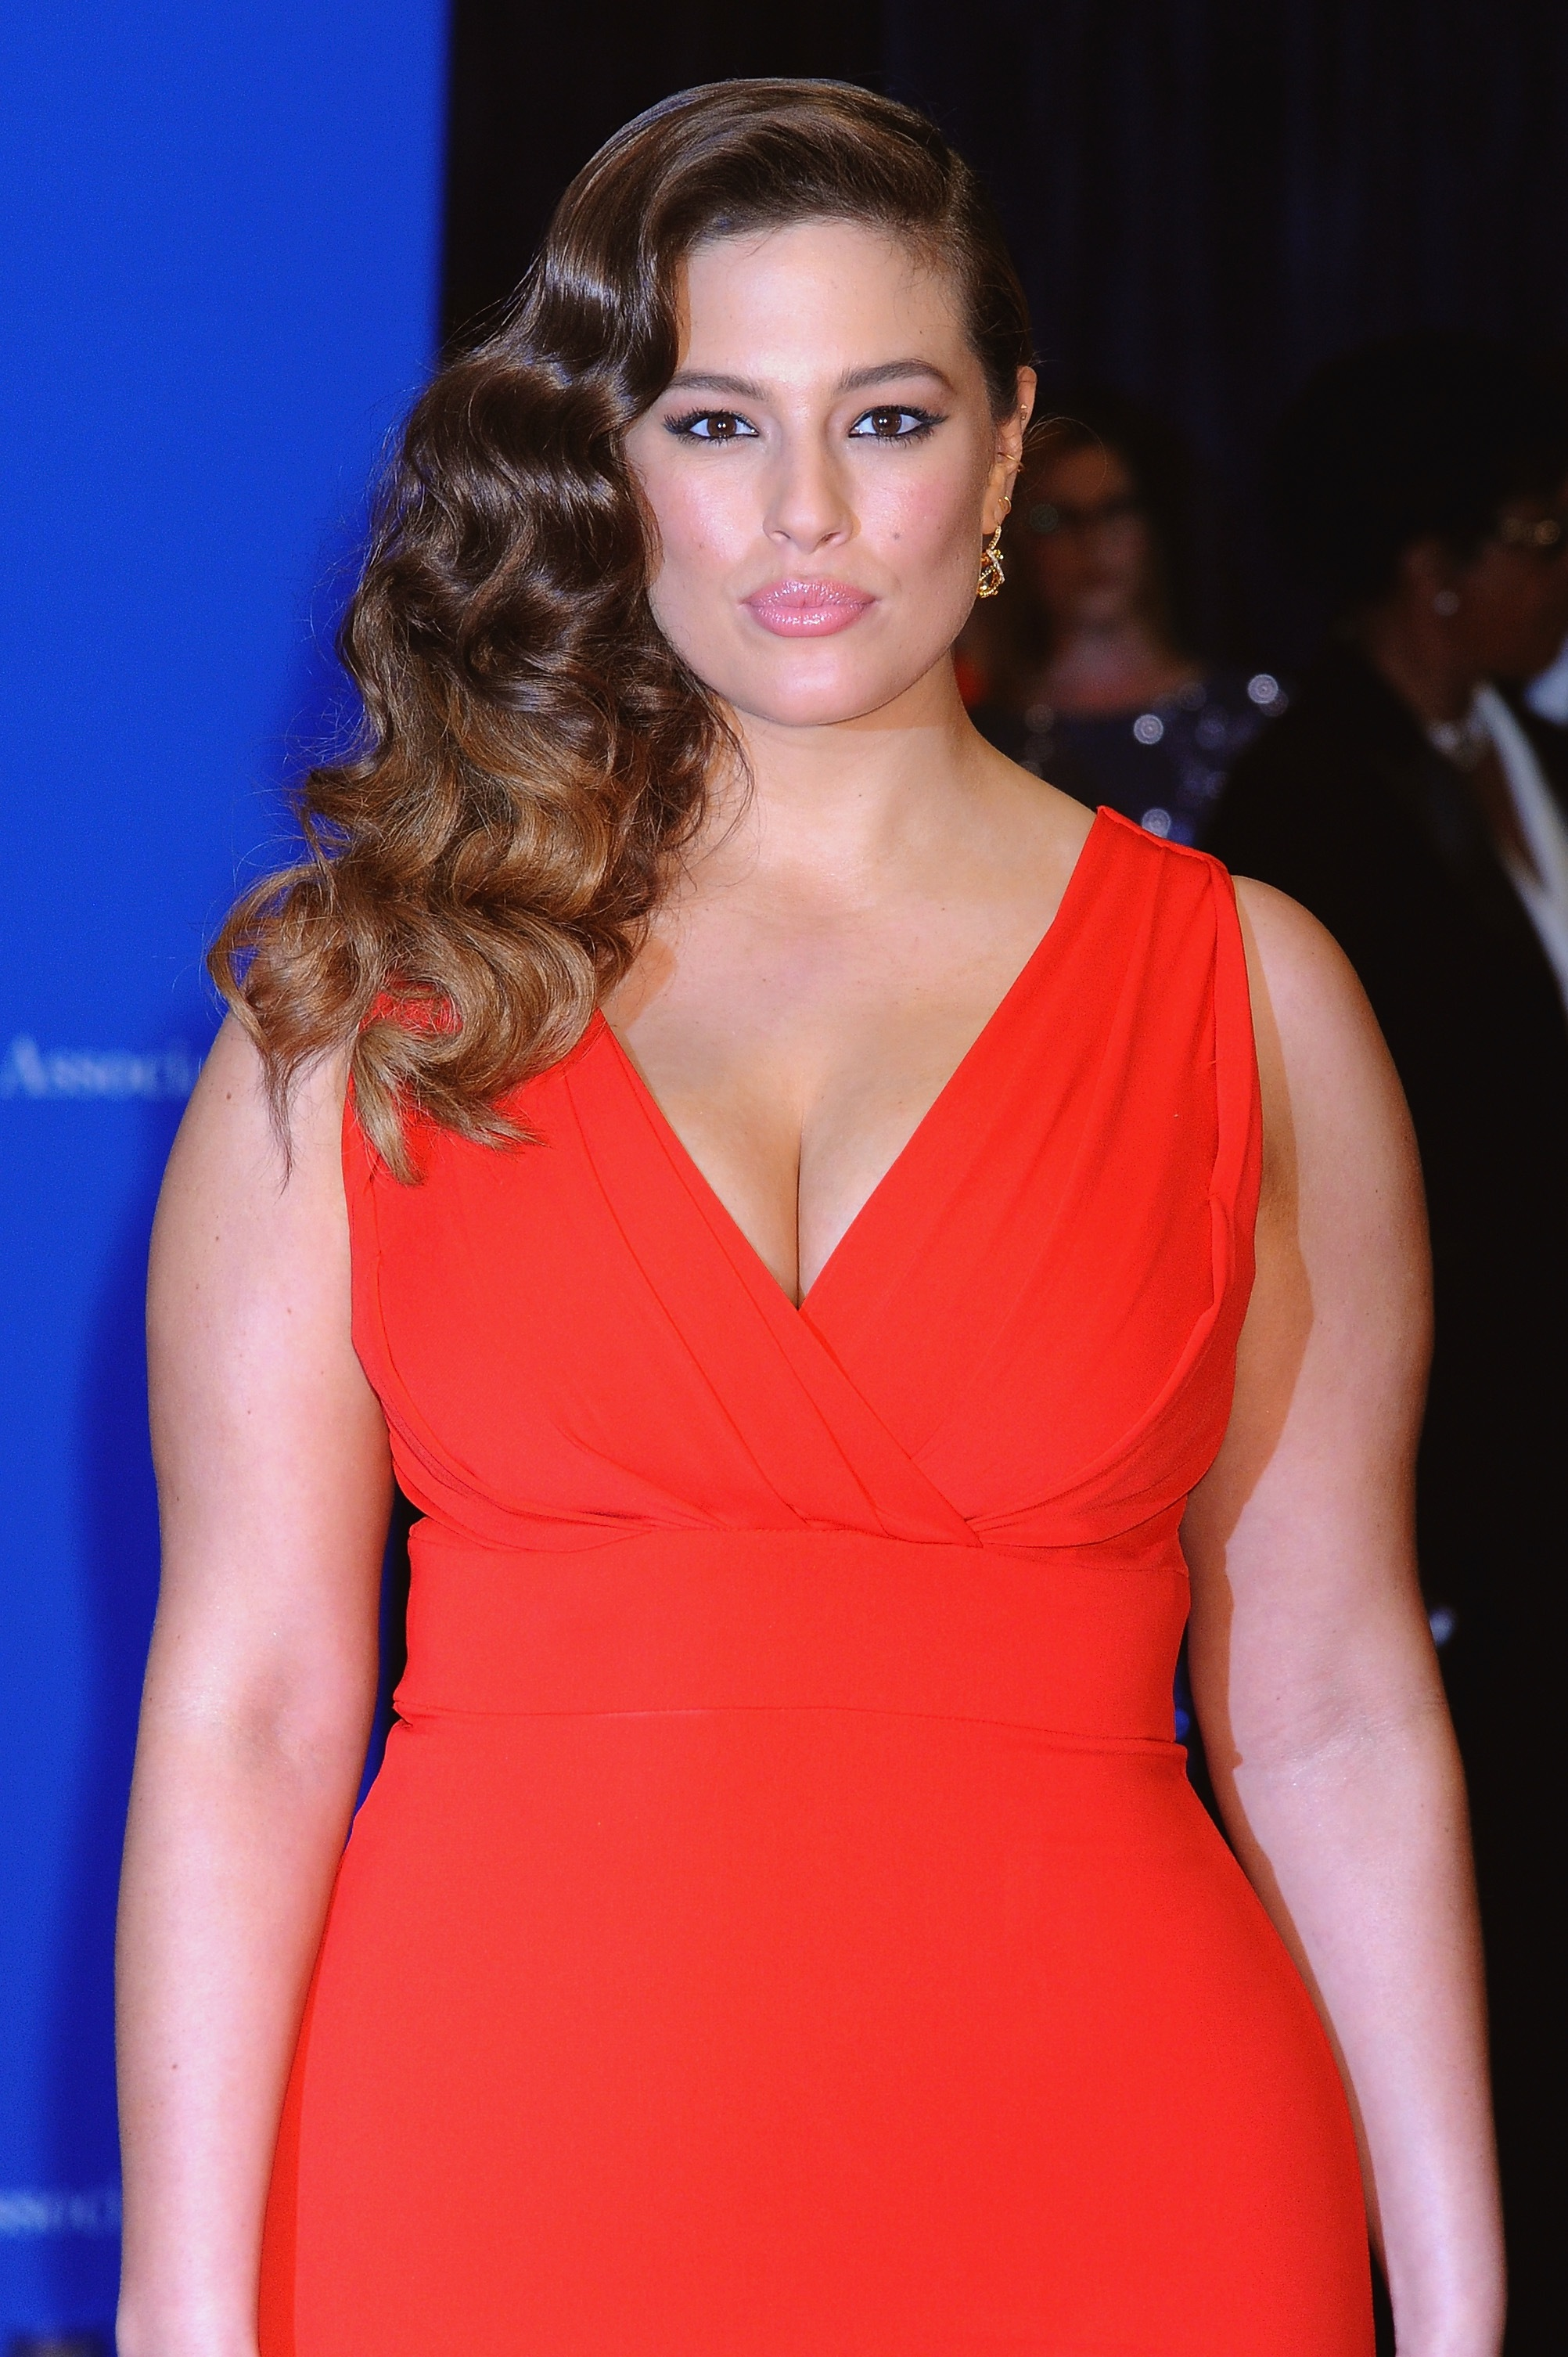 Ashley Graham Workout Routine Details Video — How Does ...